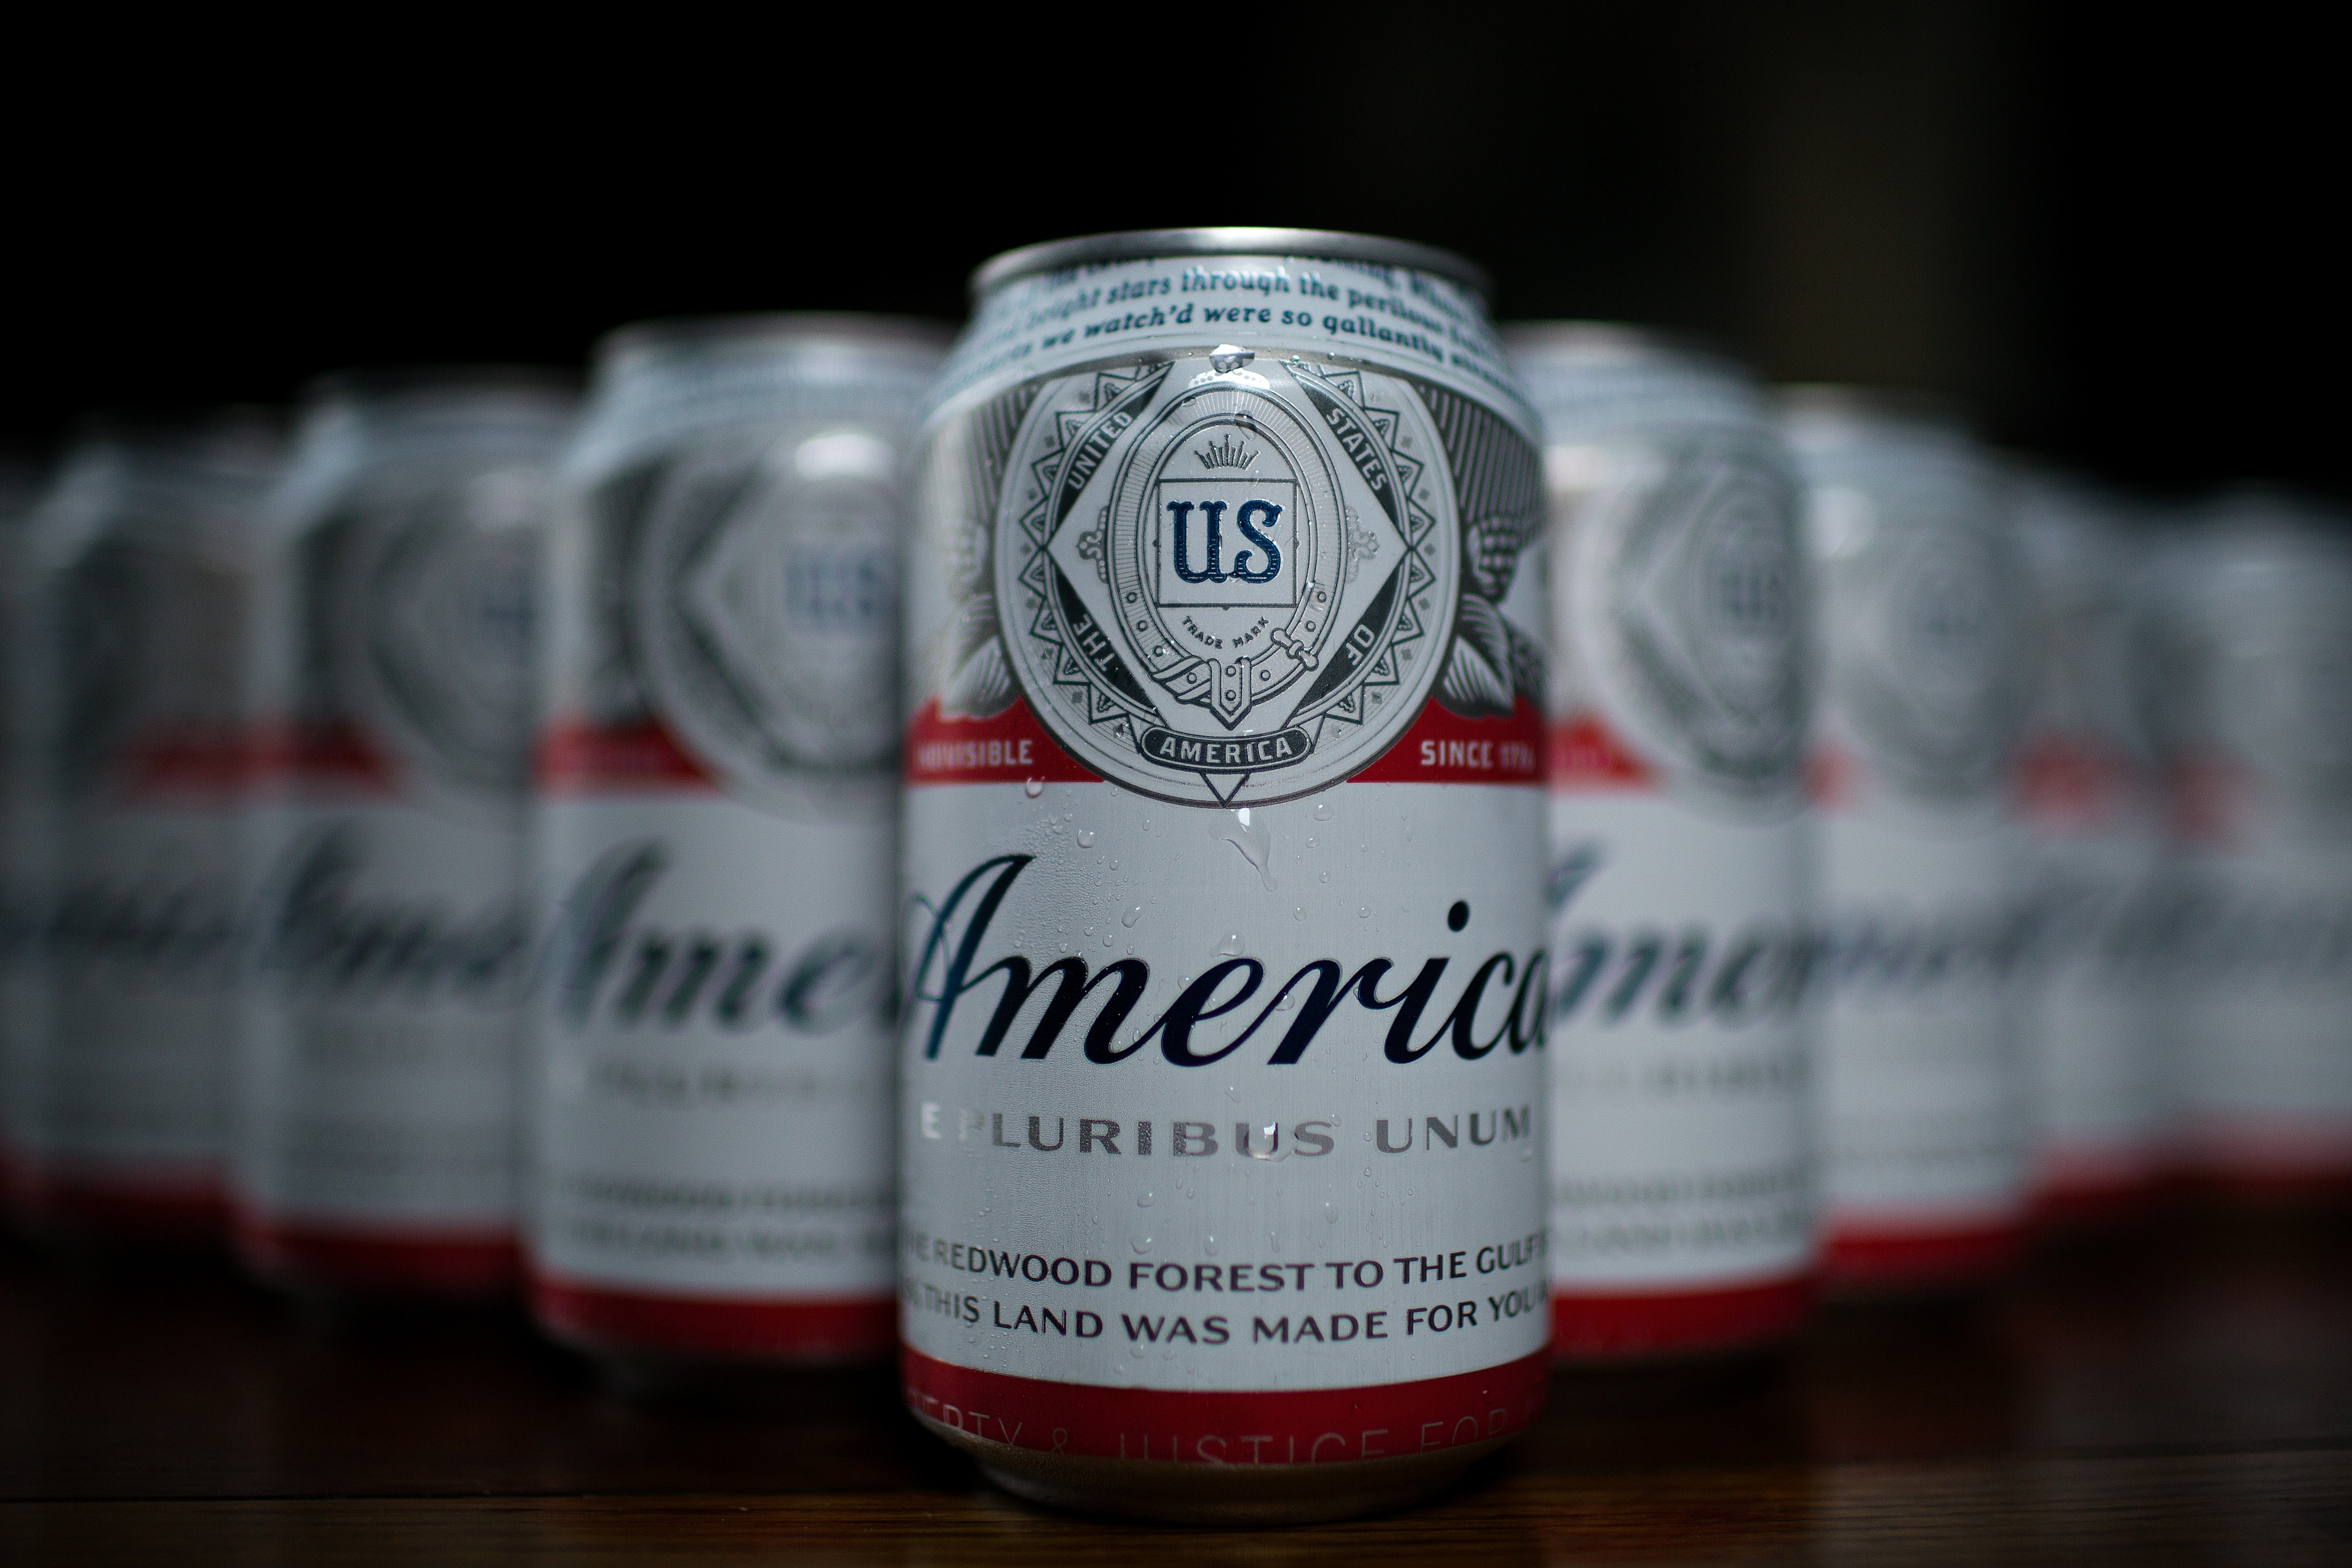 Corporate Beer Overlords Will Soon Own 1 of 3 Beers Made on Earth – BillMoyers.com photo